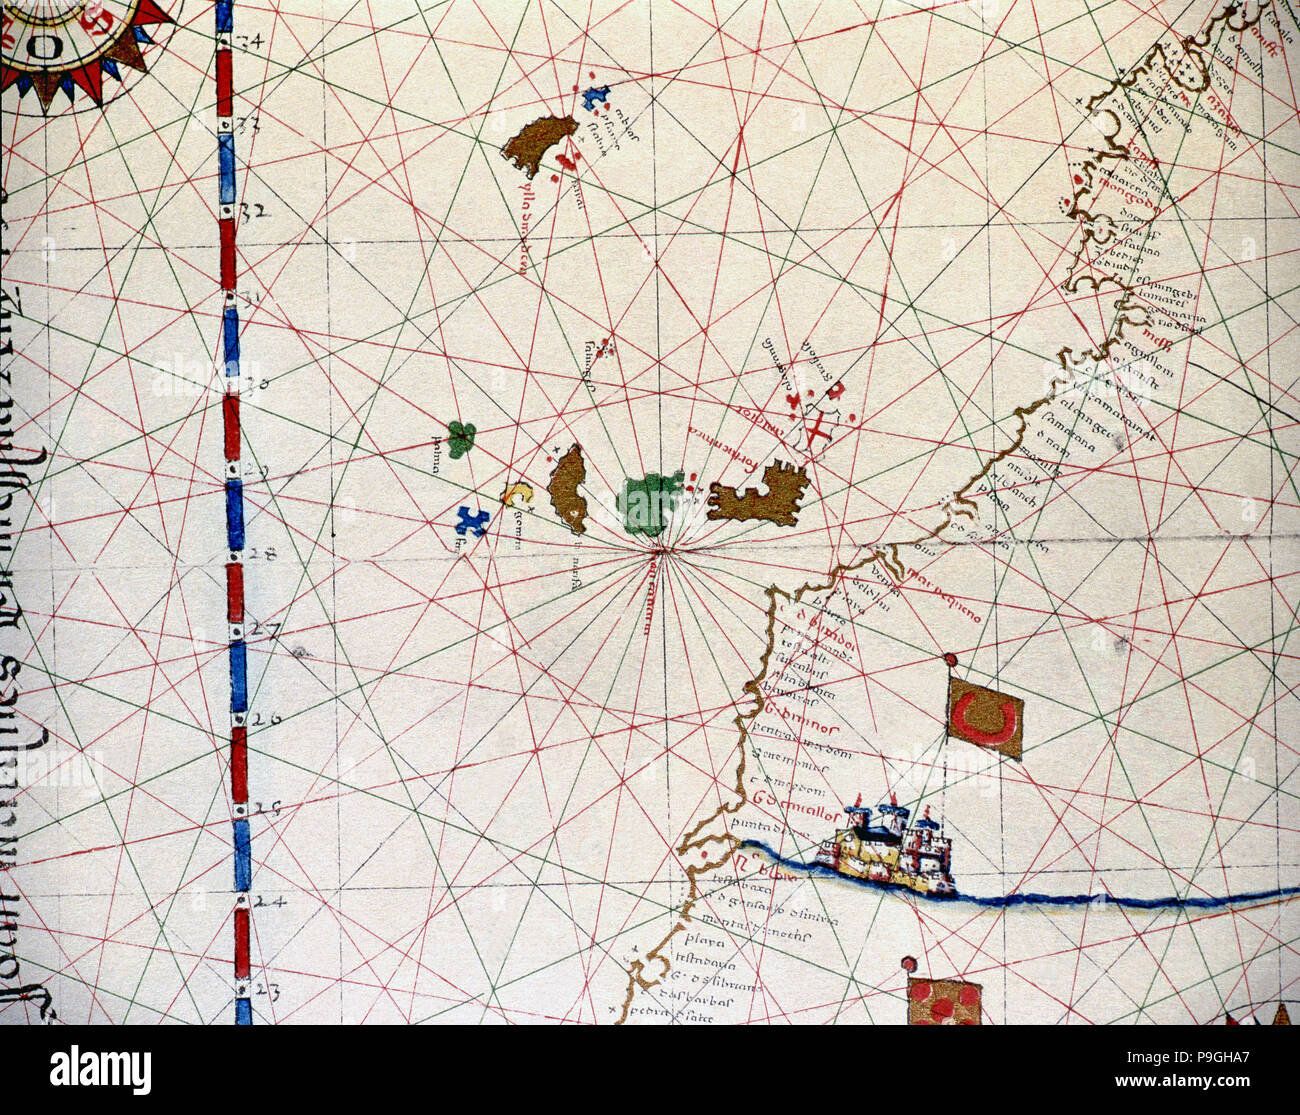 Atlas of Joan Martines, Messina, 1582. Portulan chart of the Canary Islands and the west coast of… Stock Photo